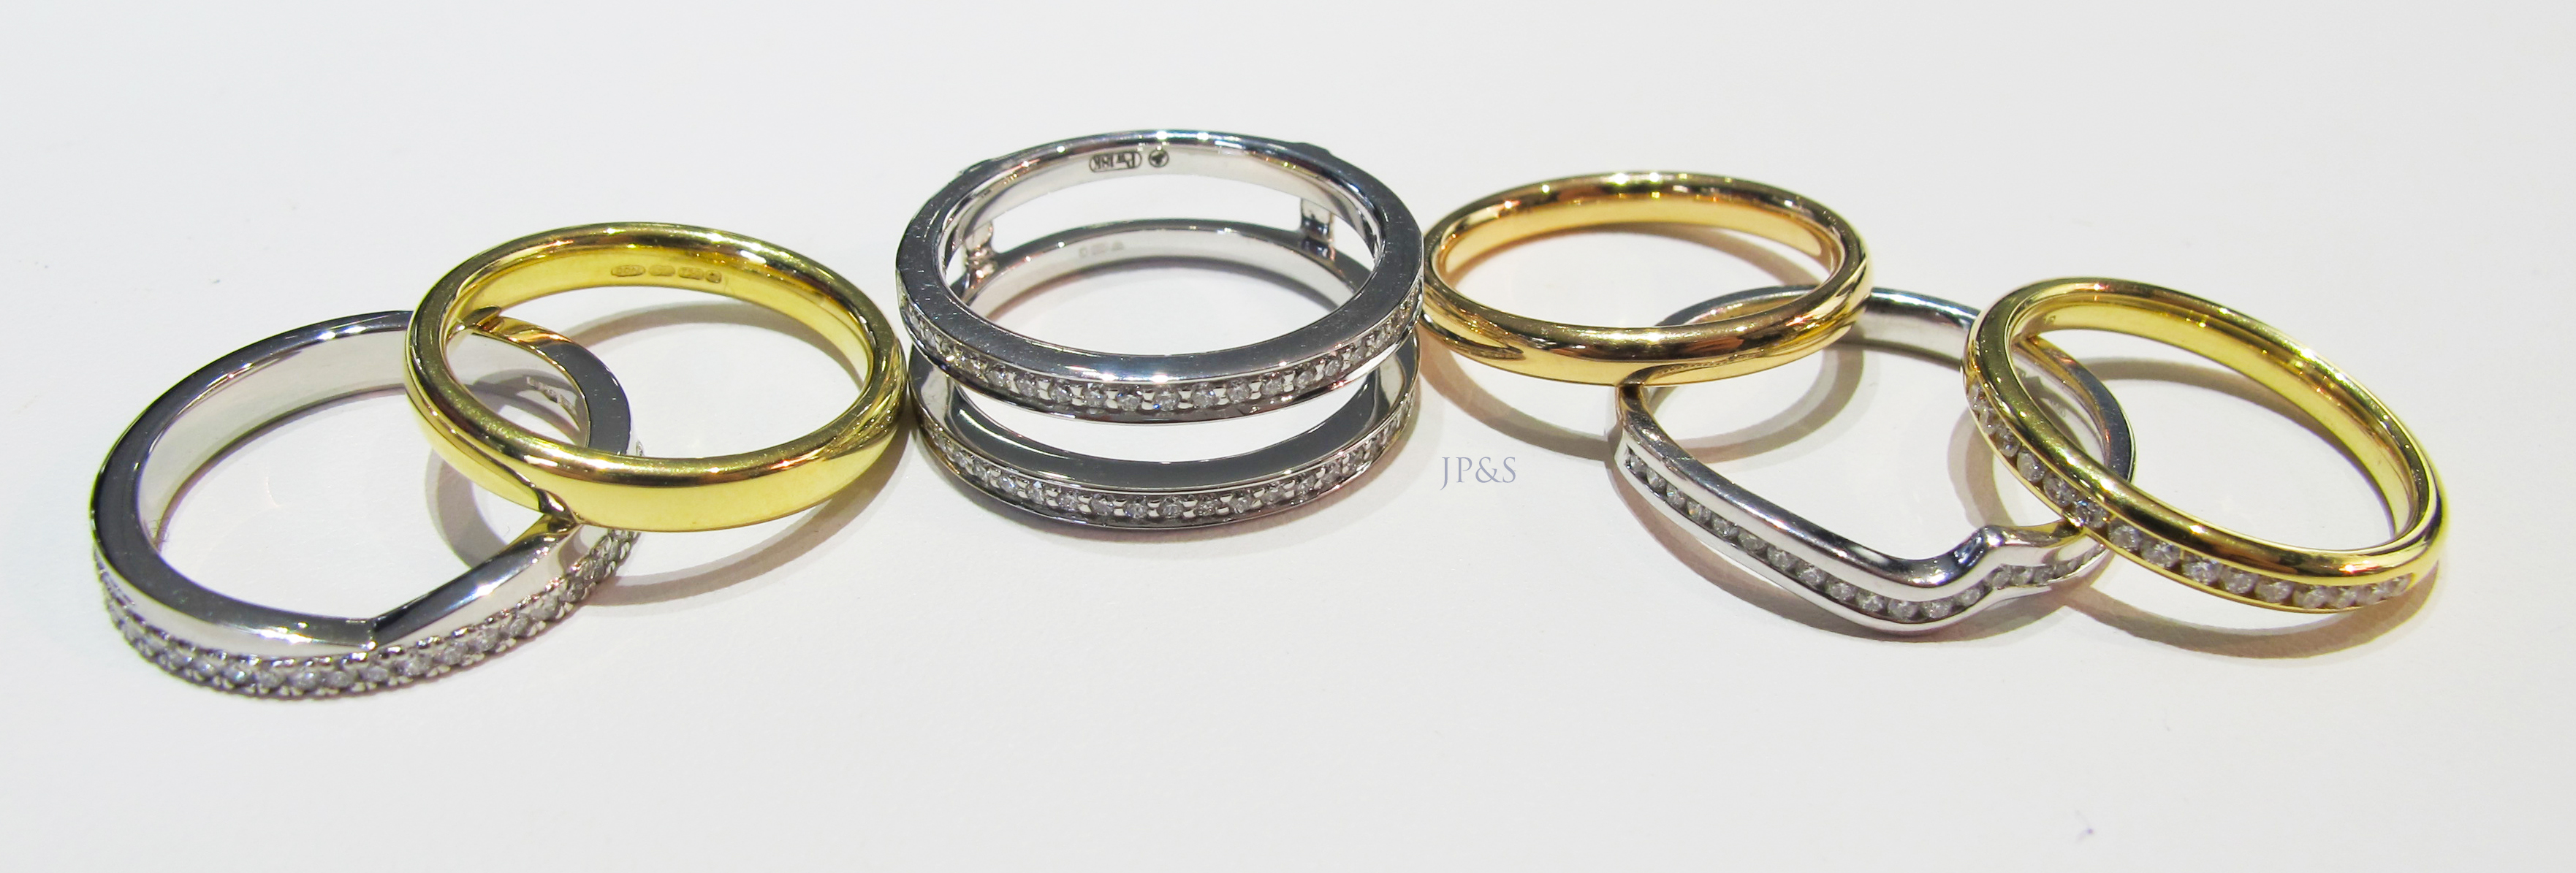 wedding set unique additional ring with com band matching his collection solutions atdisability hers bands and rings of giant